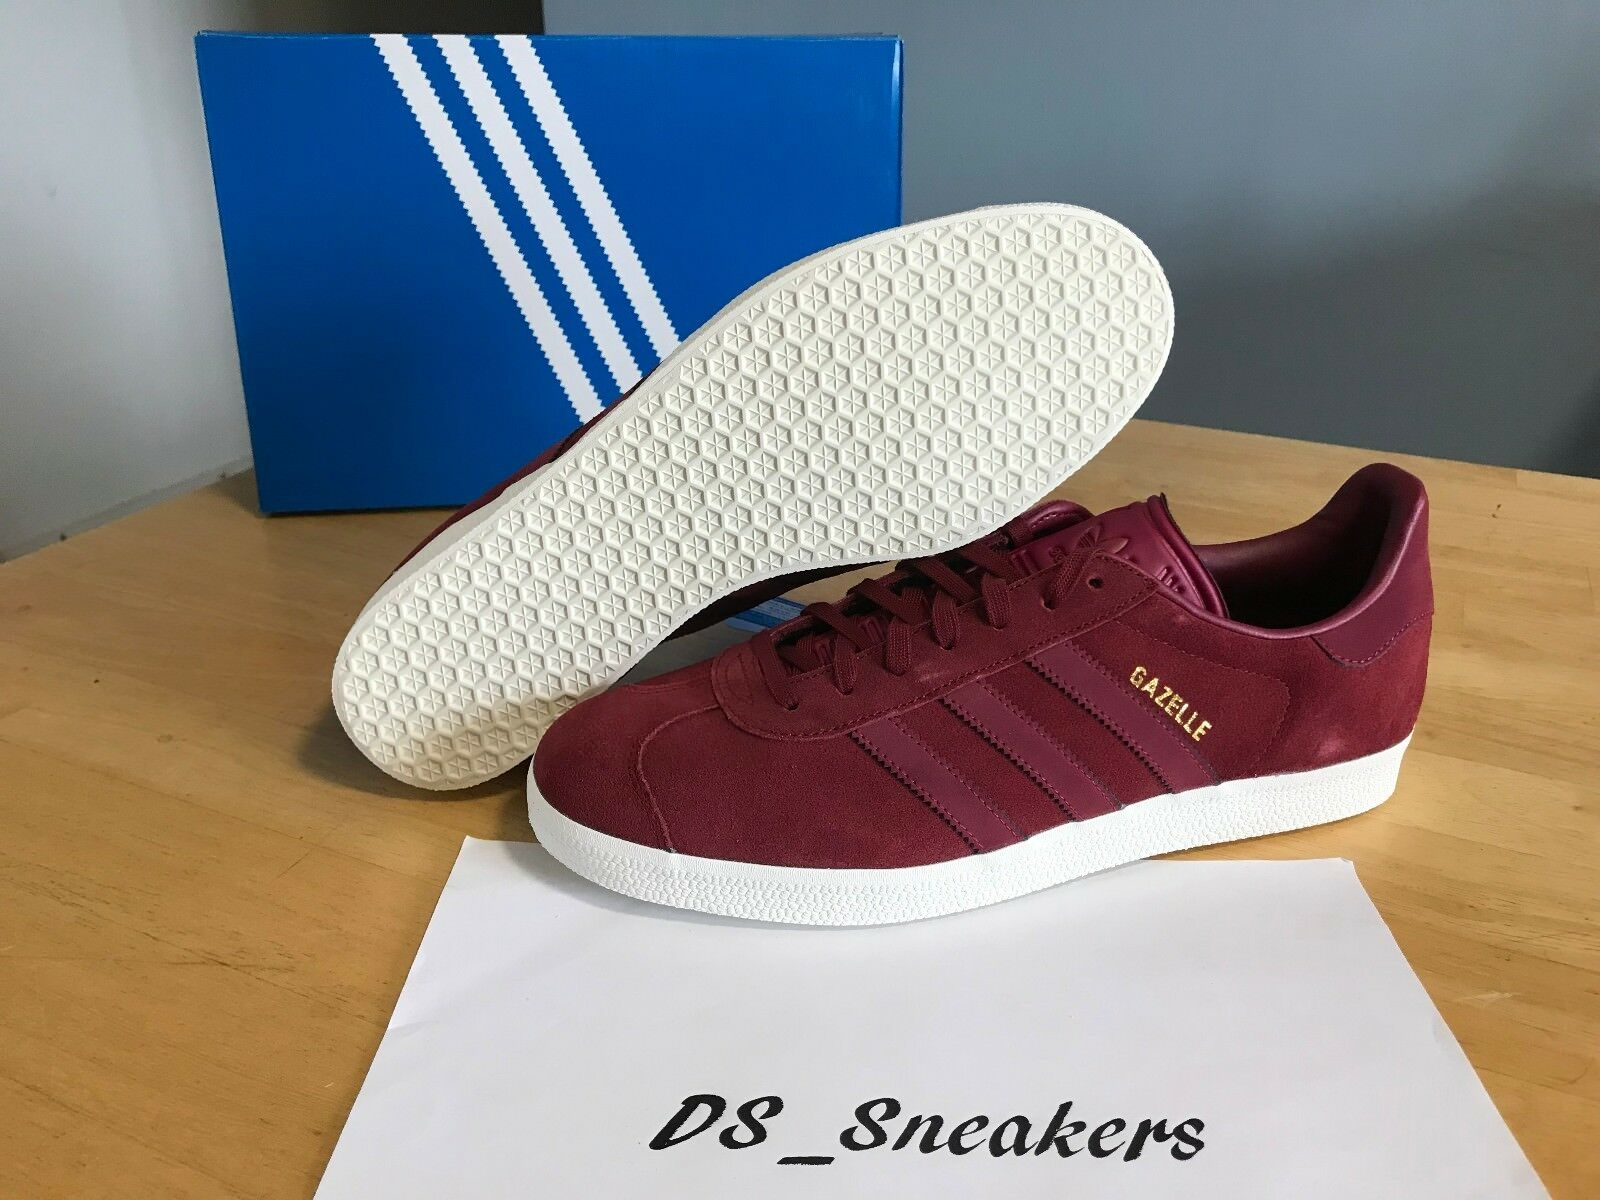 Adidas Gazelle Mens sz 11 Burgundy Suede Casual Sneakers Trainers Retro